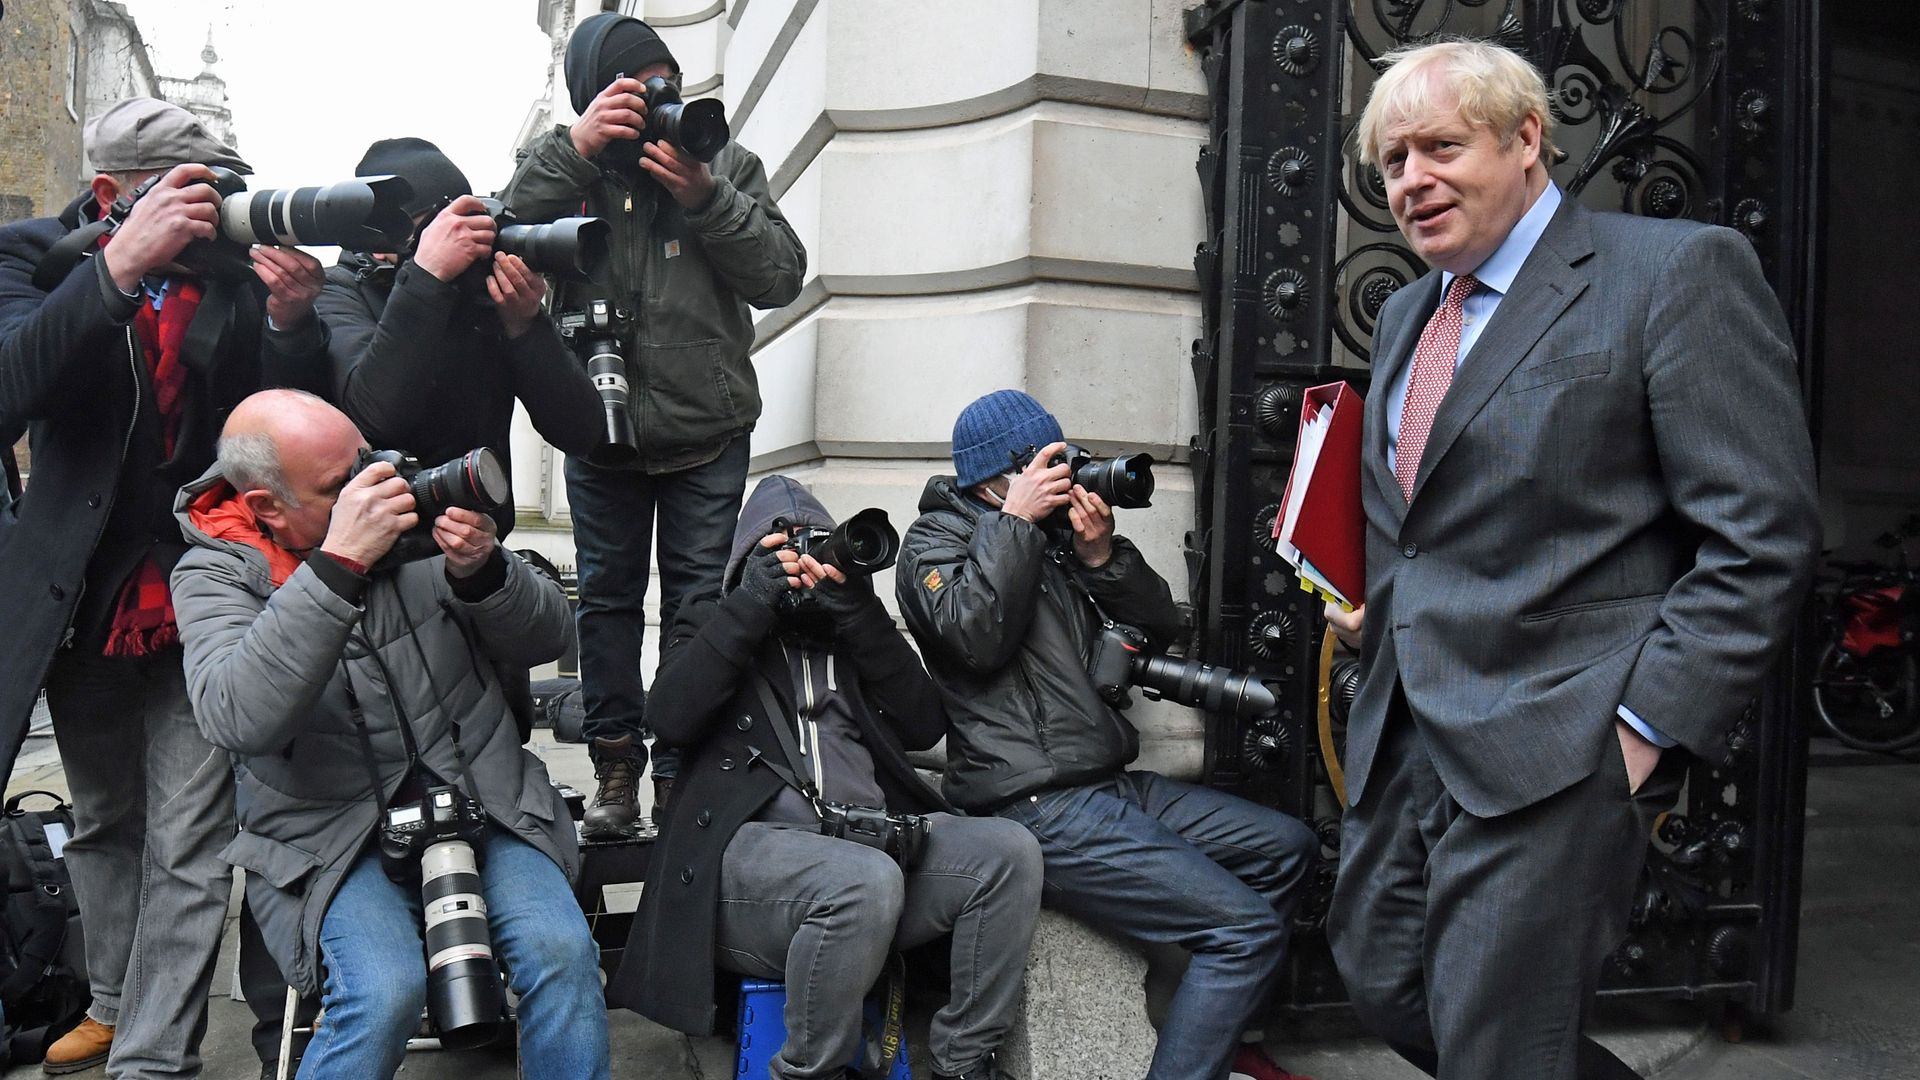 Prime minister Boris Johnson in Downing Street, London, after leaving a Cabinet meeting at the Foreign and Commonwealth Office (FCO). - Credit: PA